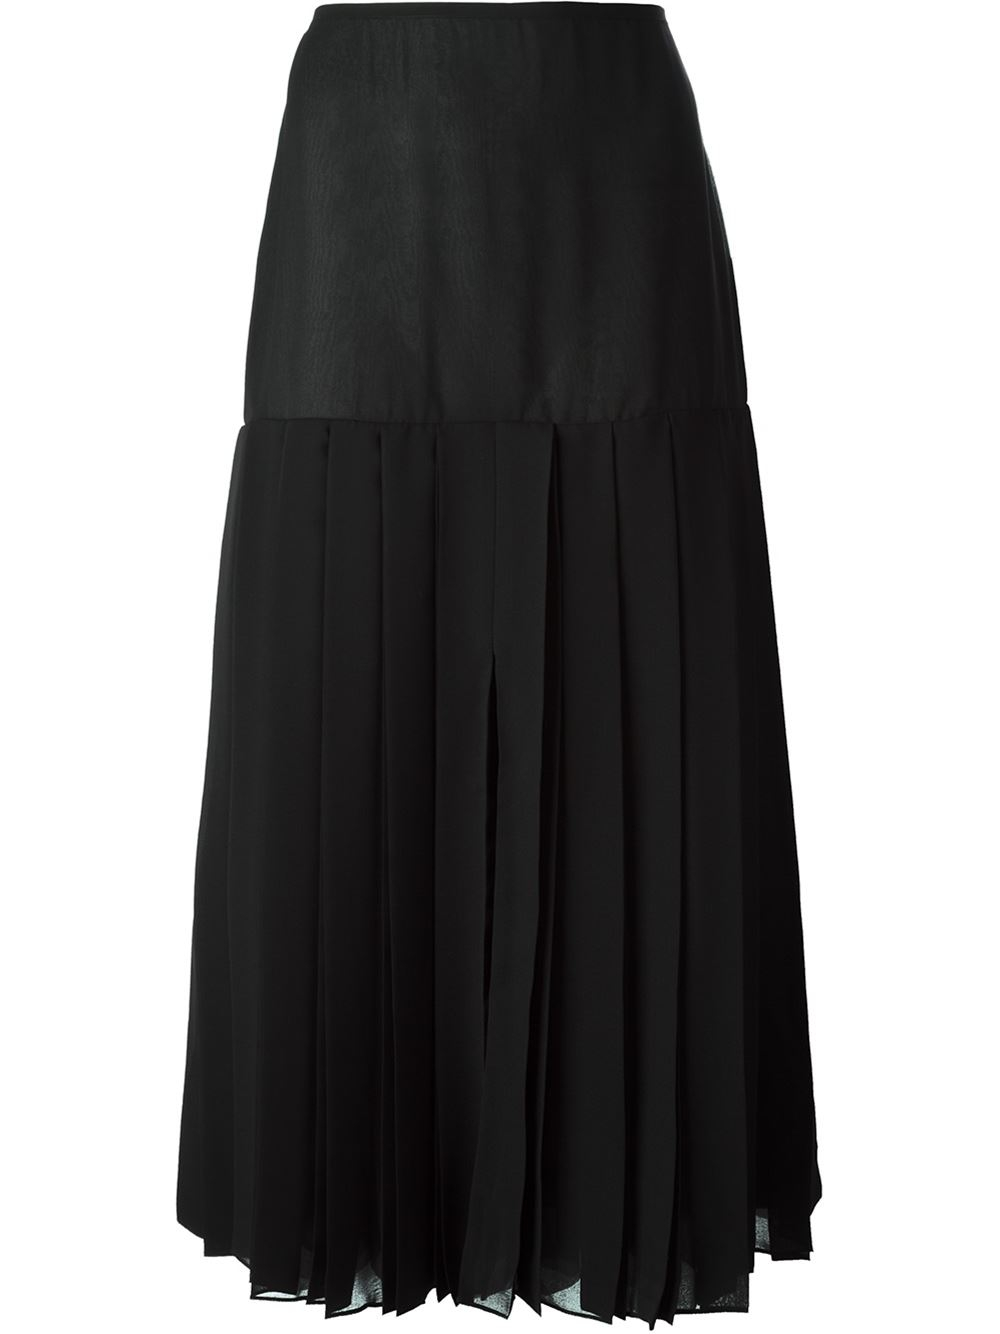 Shop eBay for great deals on Black Skirts for Women. You'll find new or used products in Black Skirts for Women on eBay. Free shipping on selected items.